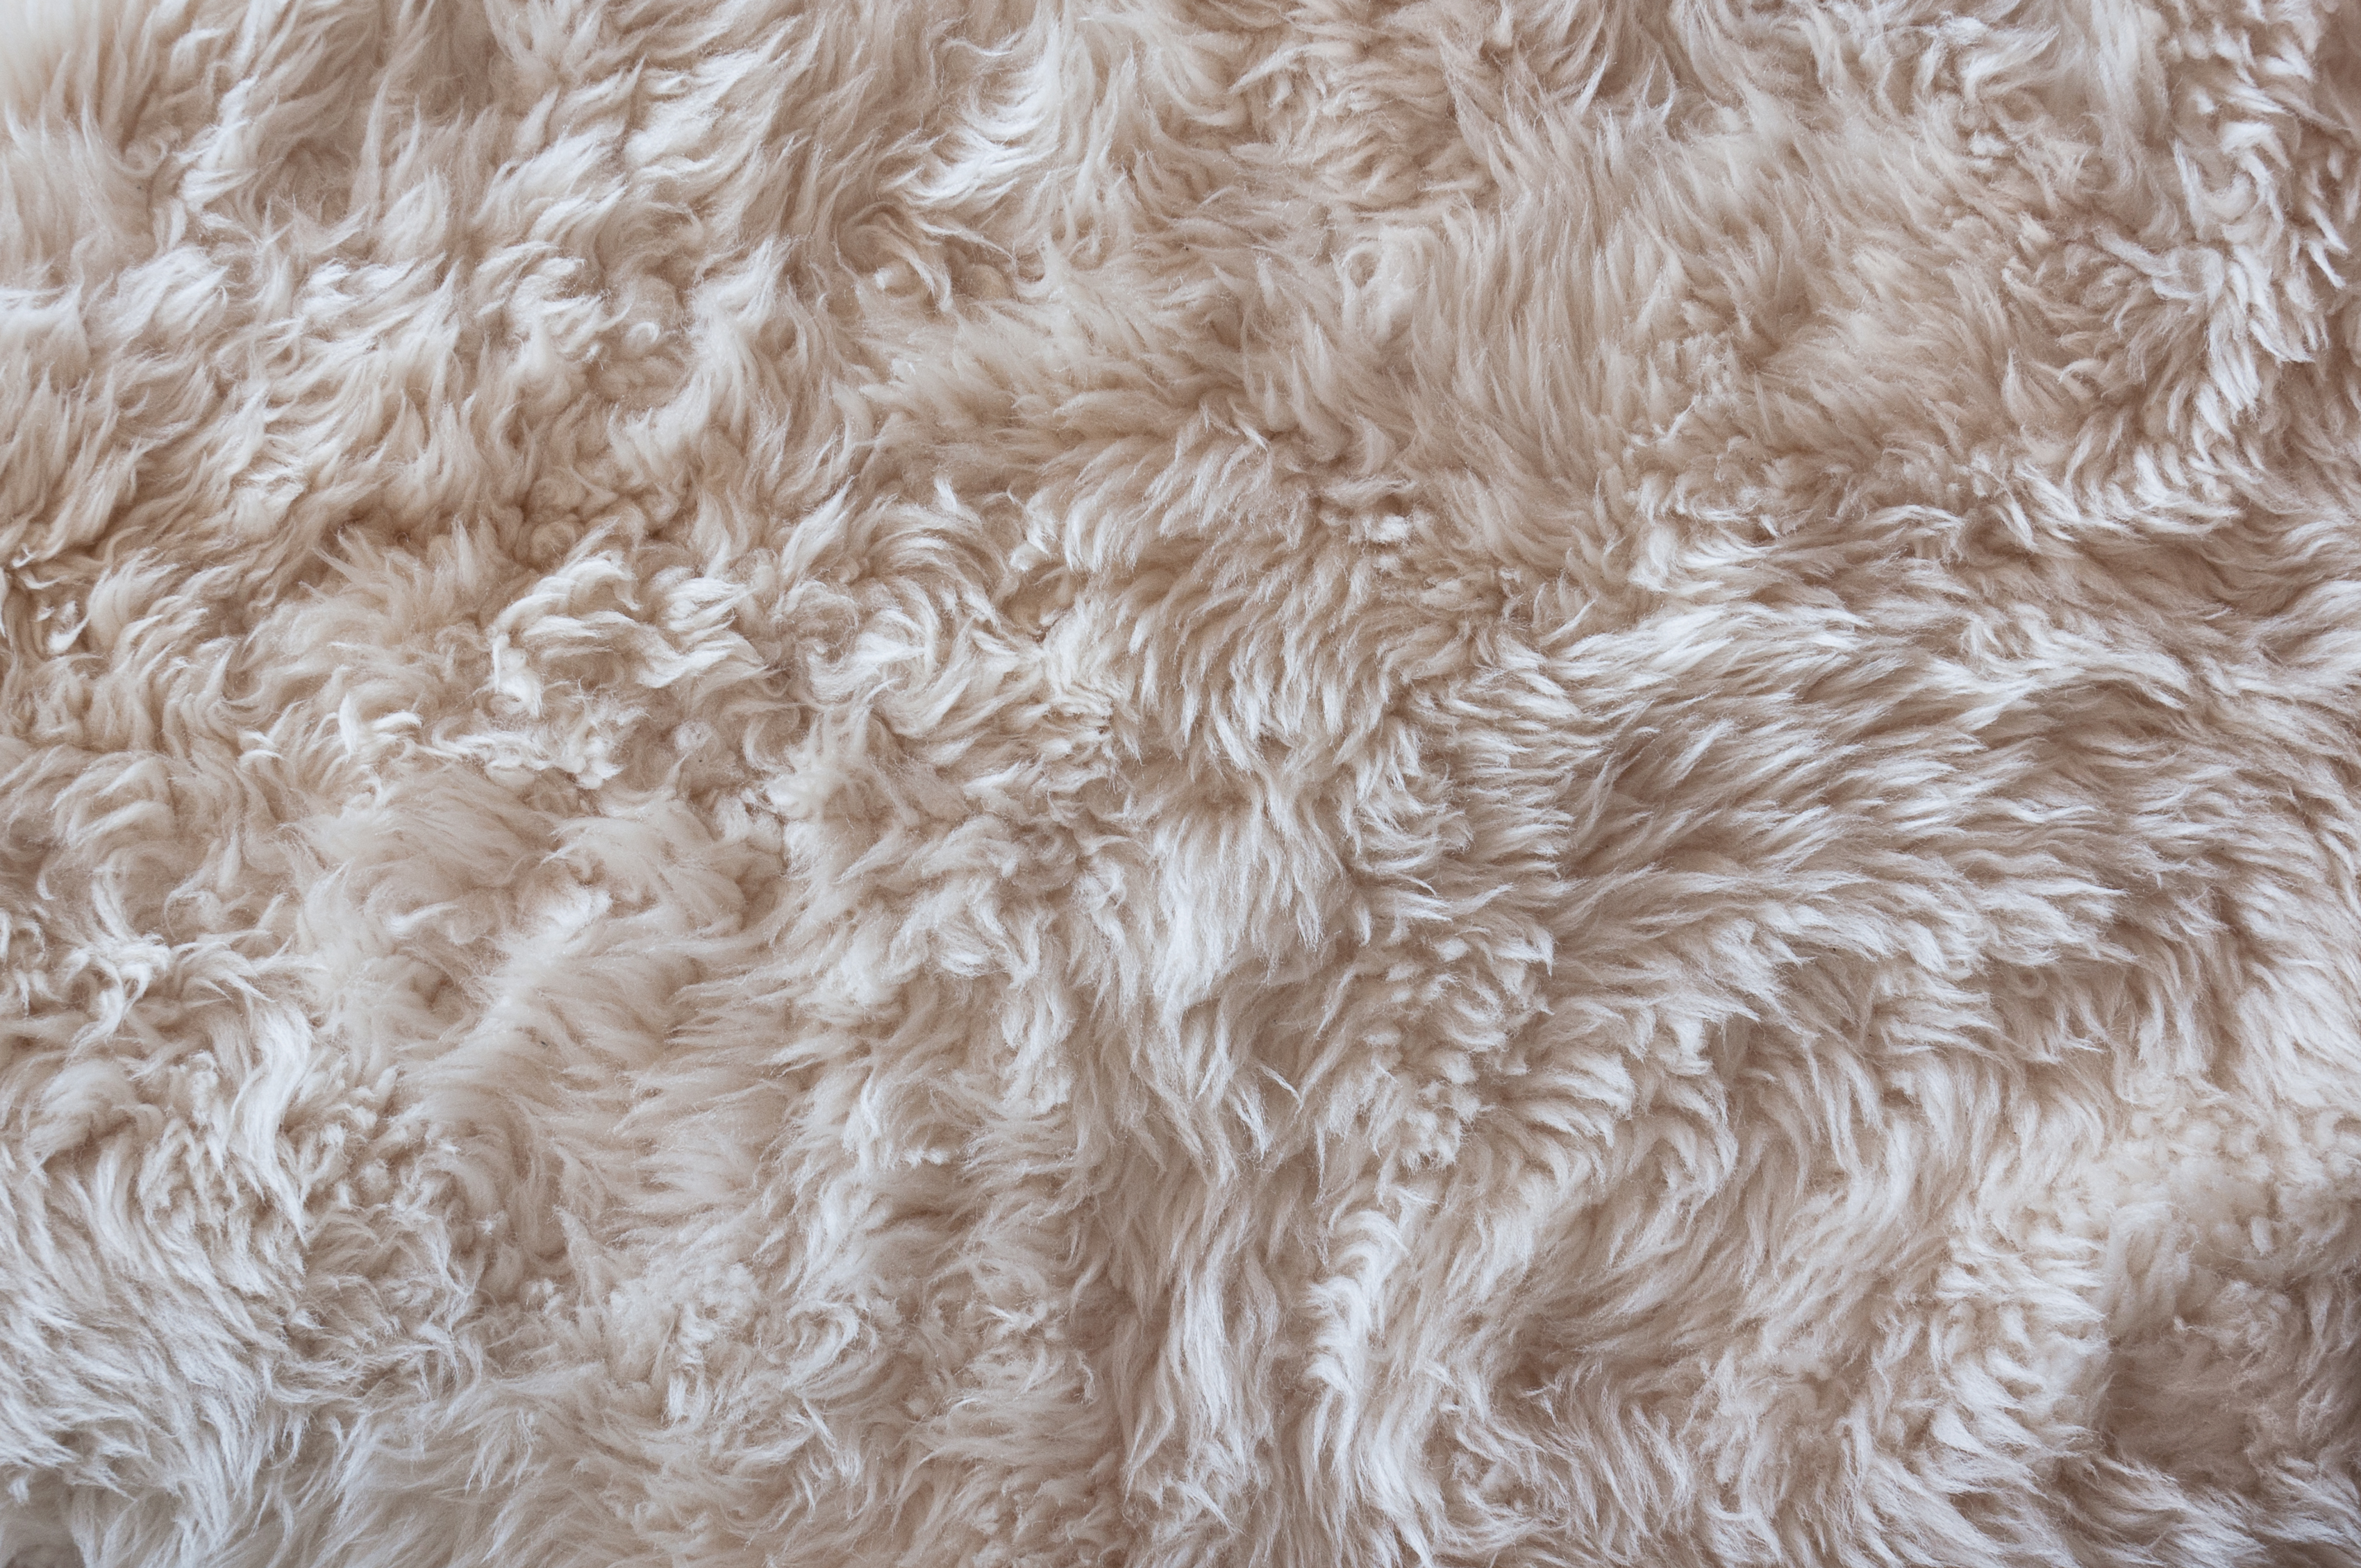 File:Sheepskin texture 2014.jpg - Wikimedia Commons